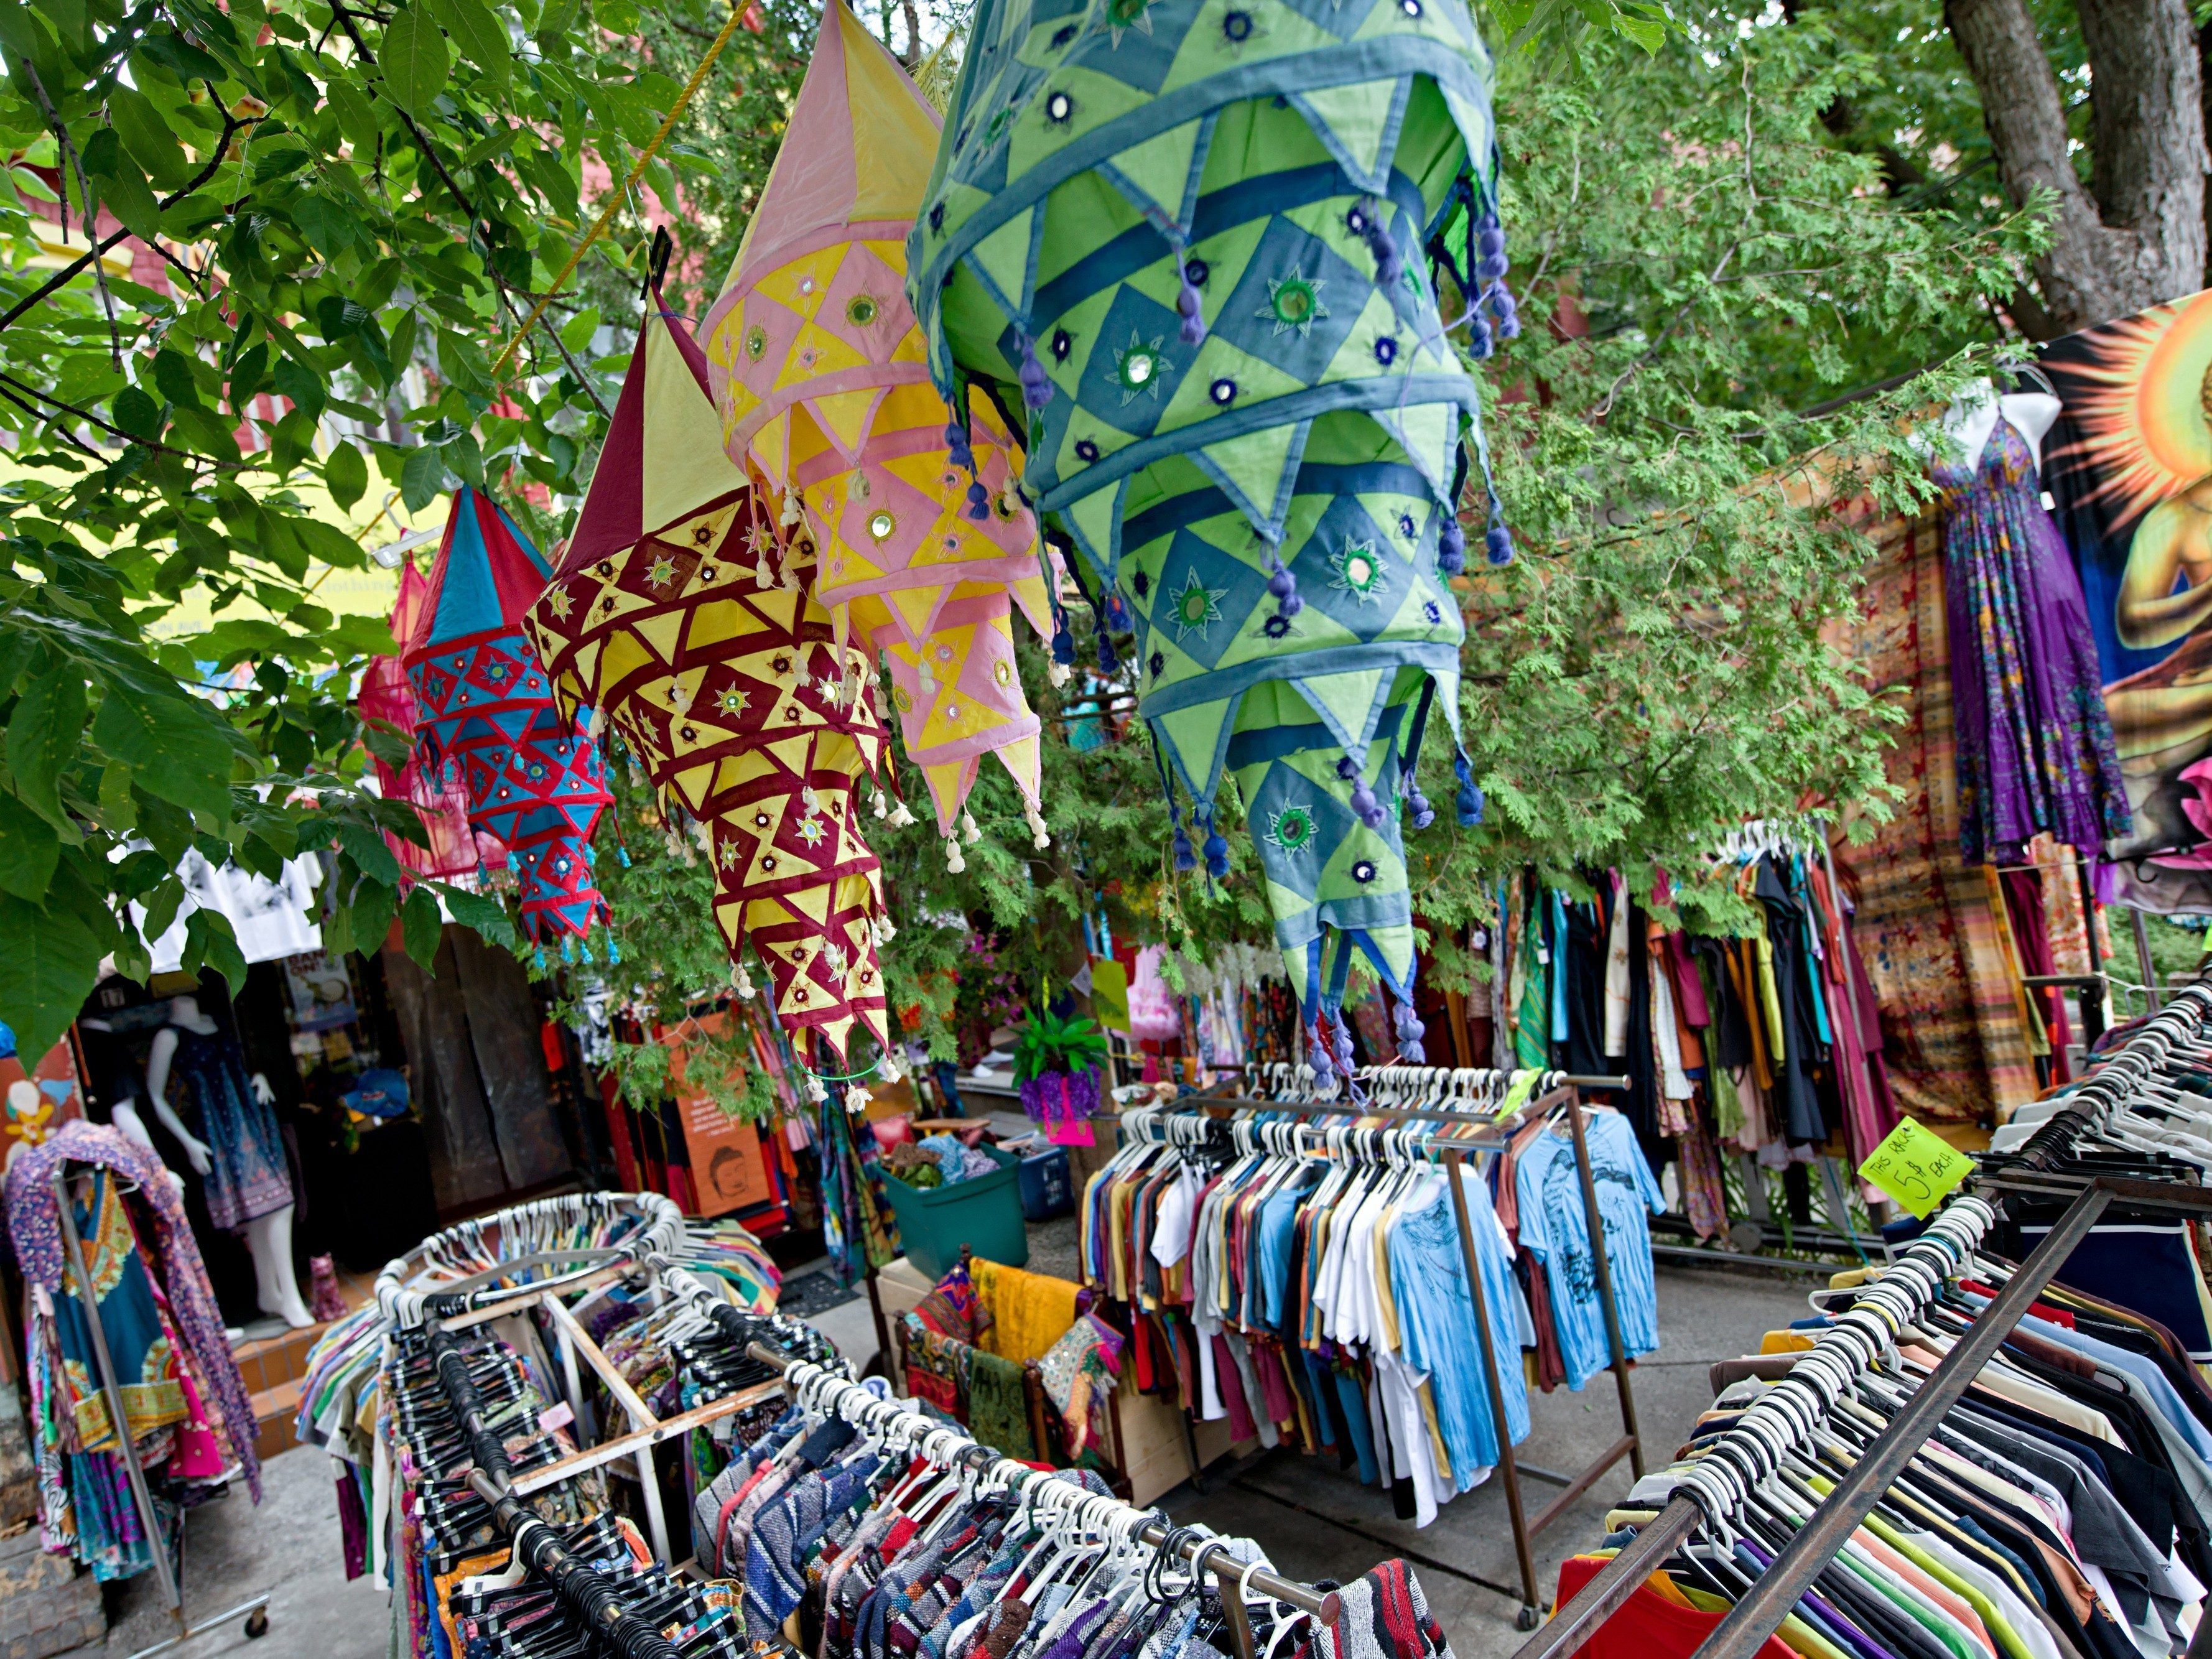 13. Pedestrian Sundays at Kensington Market